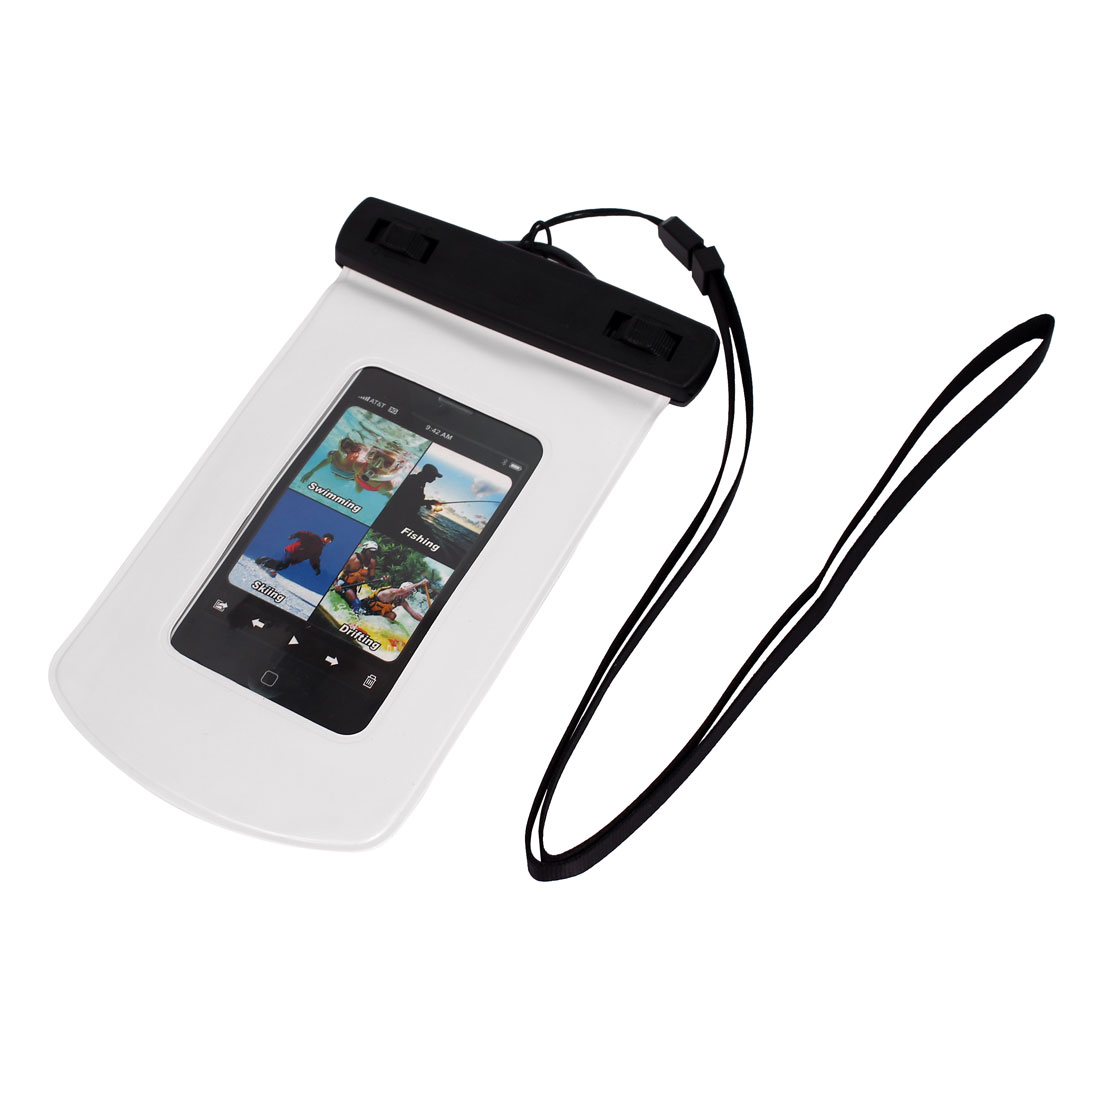 Waterproof Bag Case Holder Protector White for iPhone 4G w Armband Strap